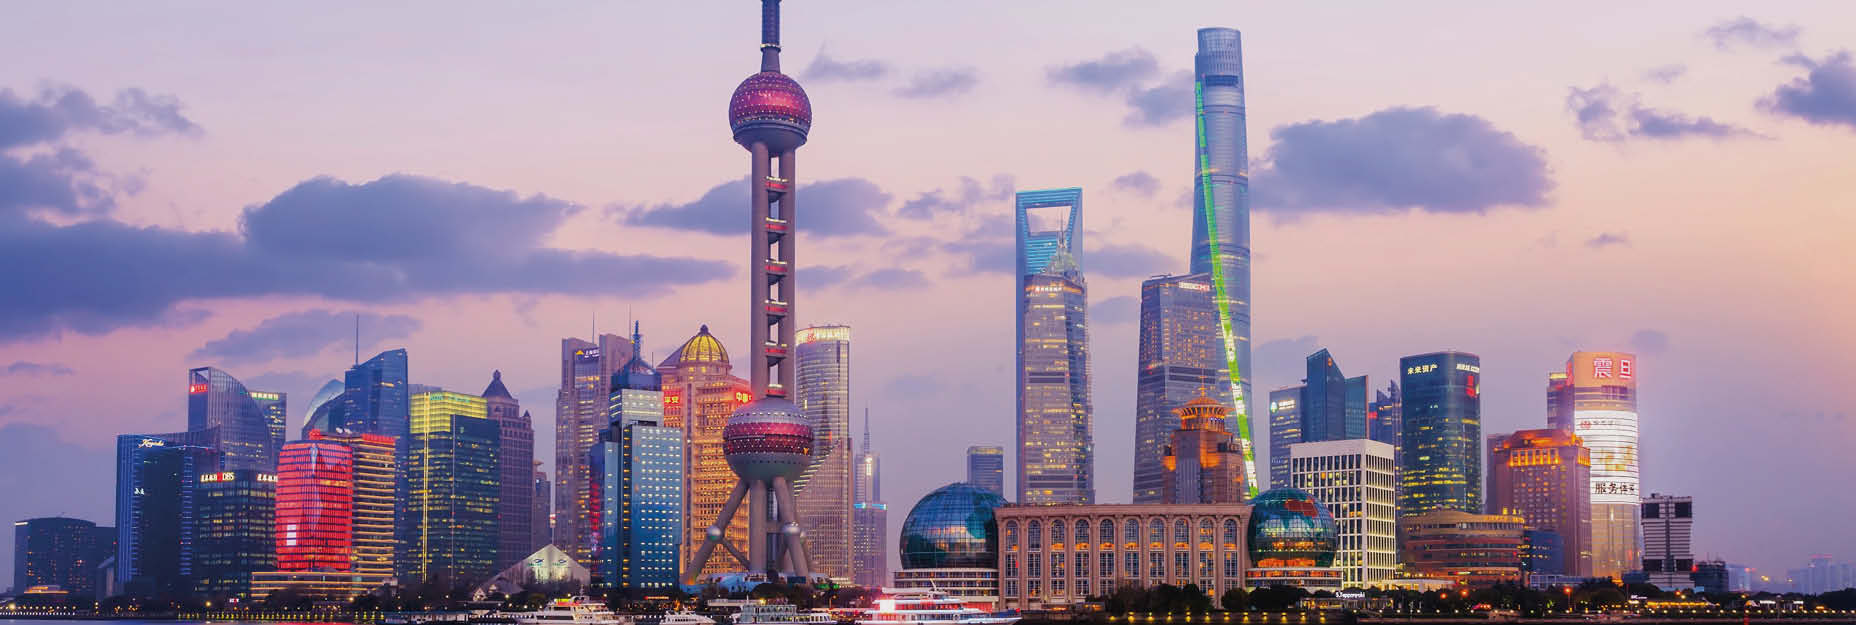 Shanghai food waste law: How F&B companies can successfully implement the new regulation